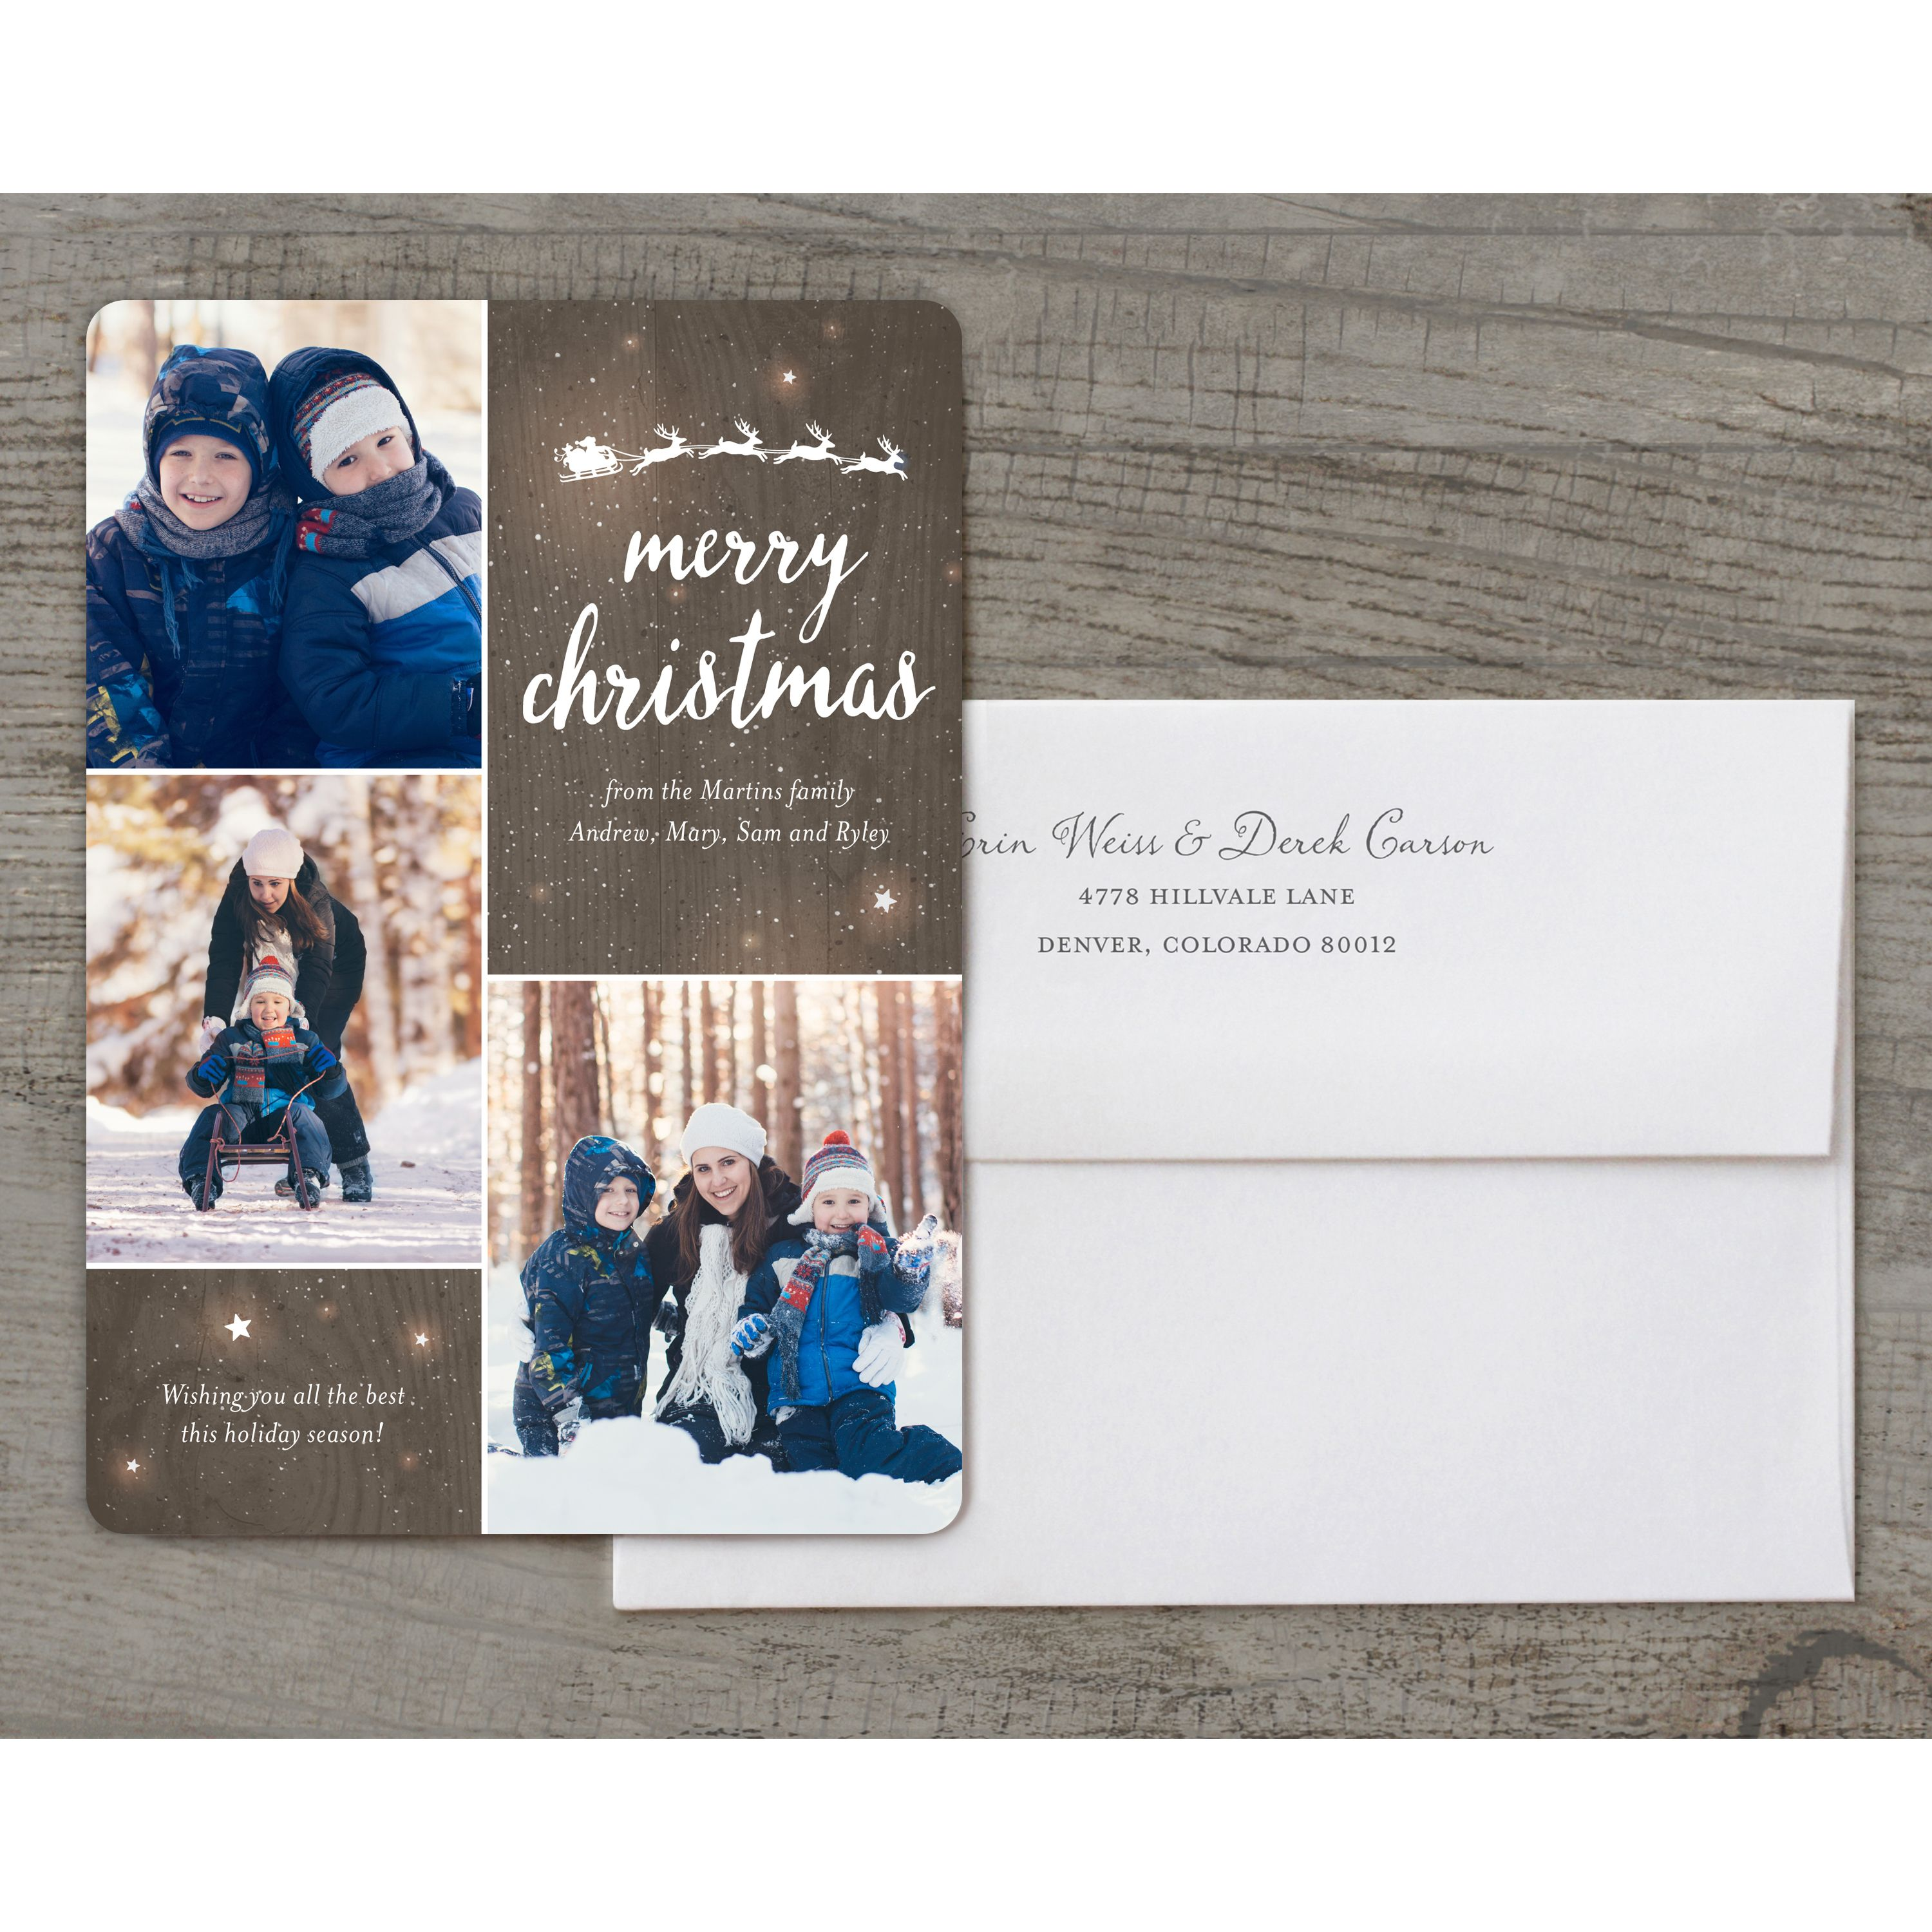 Twinkling Stars - Deluxe 5x7 Personalized Holiday Christmas Card